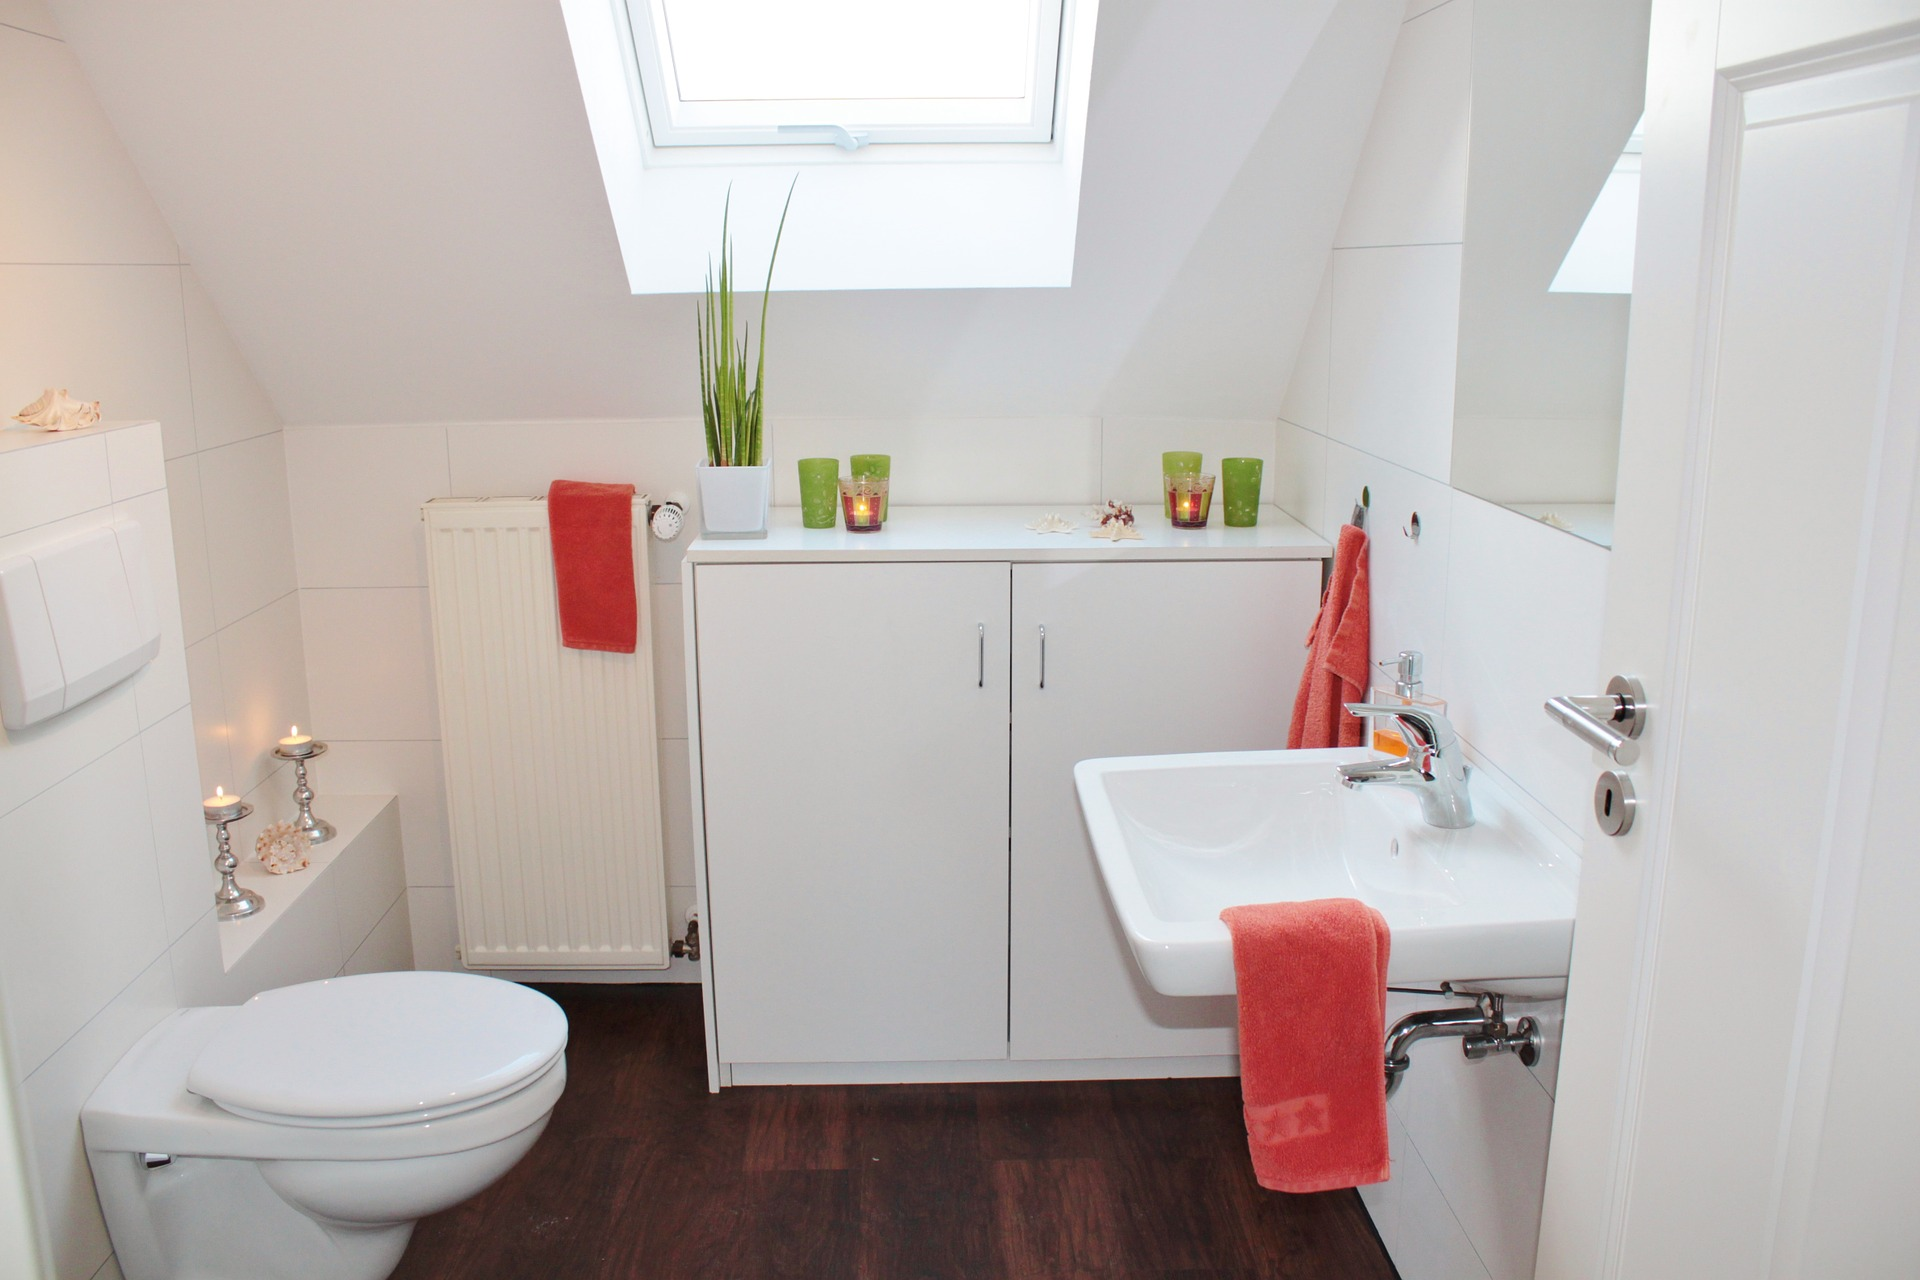 Update your throne: how to choose and fit a new toilet seat ... on fresh kitchen design, fresh house design, fresh bathroom paint colors, fresh interior design, fresh room design,